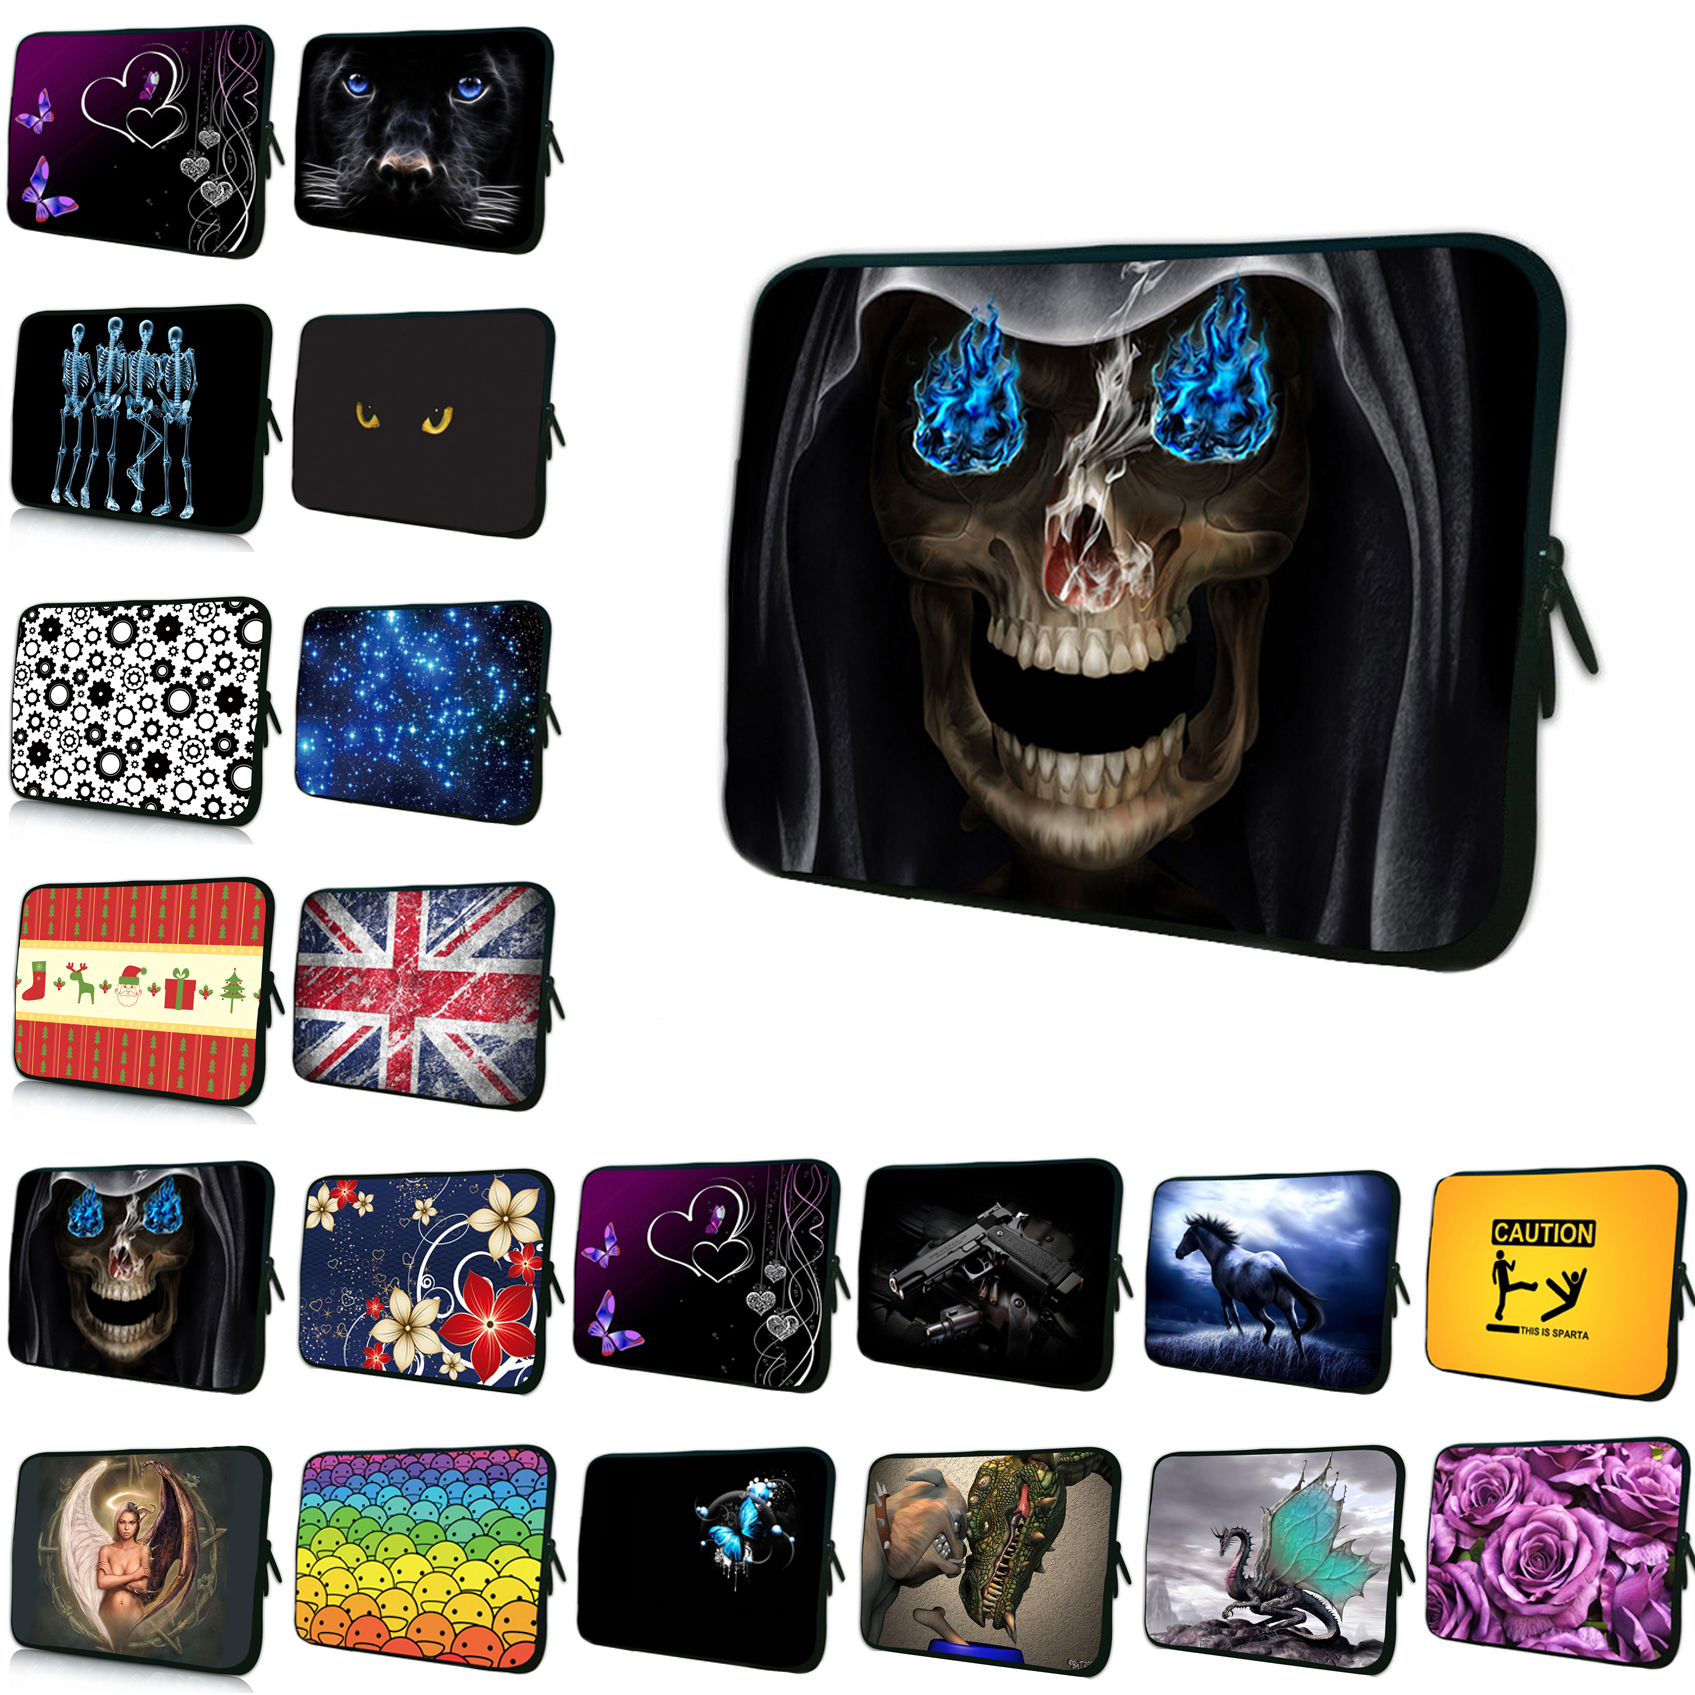 Cool Mens Portable Bag Shockproof Cover Sleeve Cases 7 10 12 13 14 15 17 17.3 Laptop Bags For Lenovo Acer Asus Samsung Dell Sony(China (Mainland))